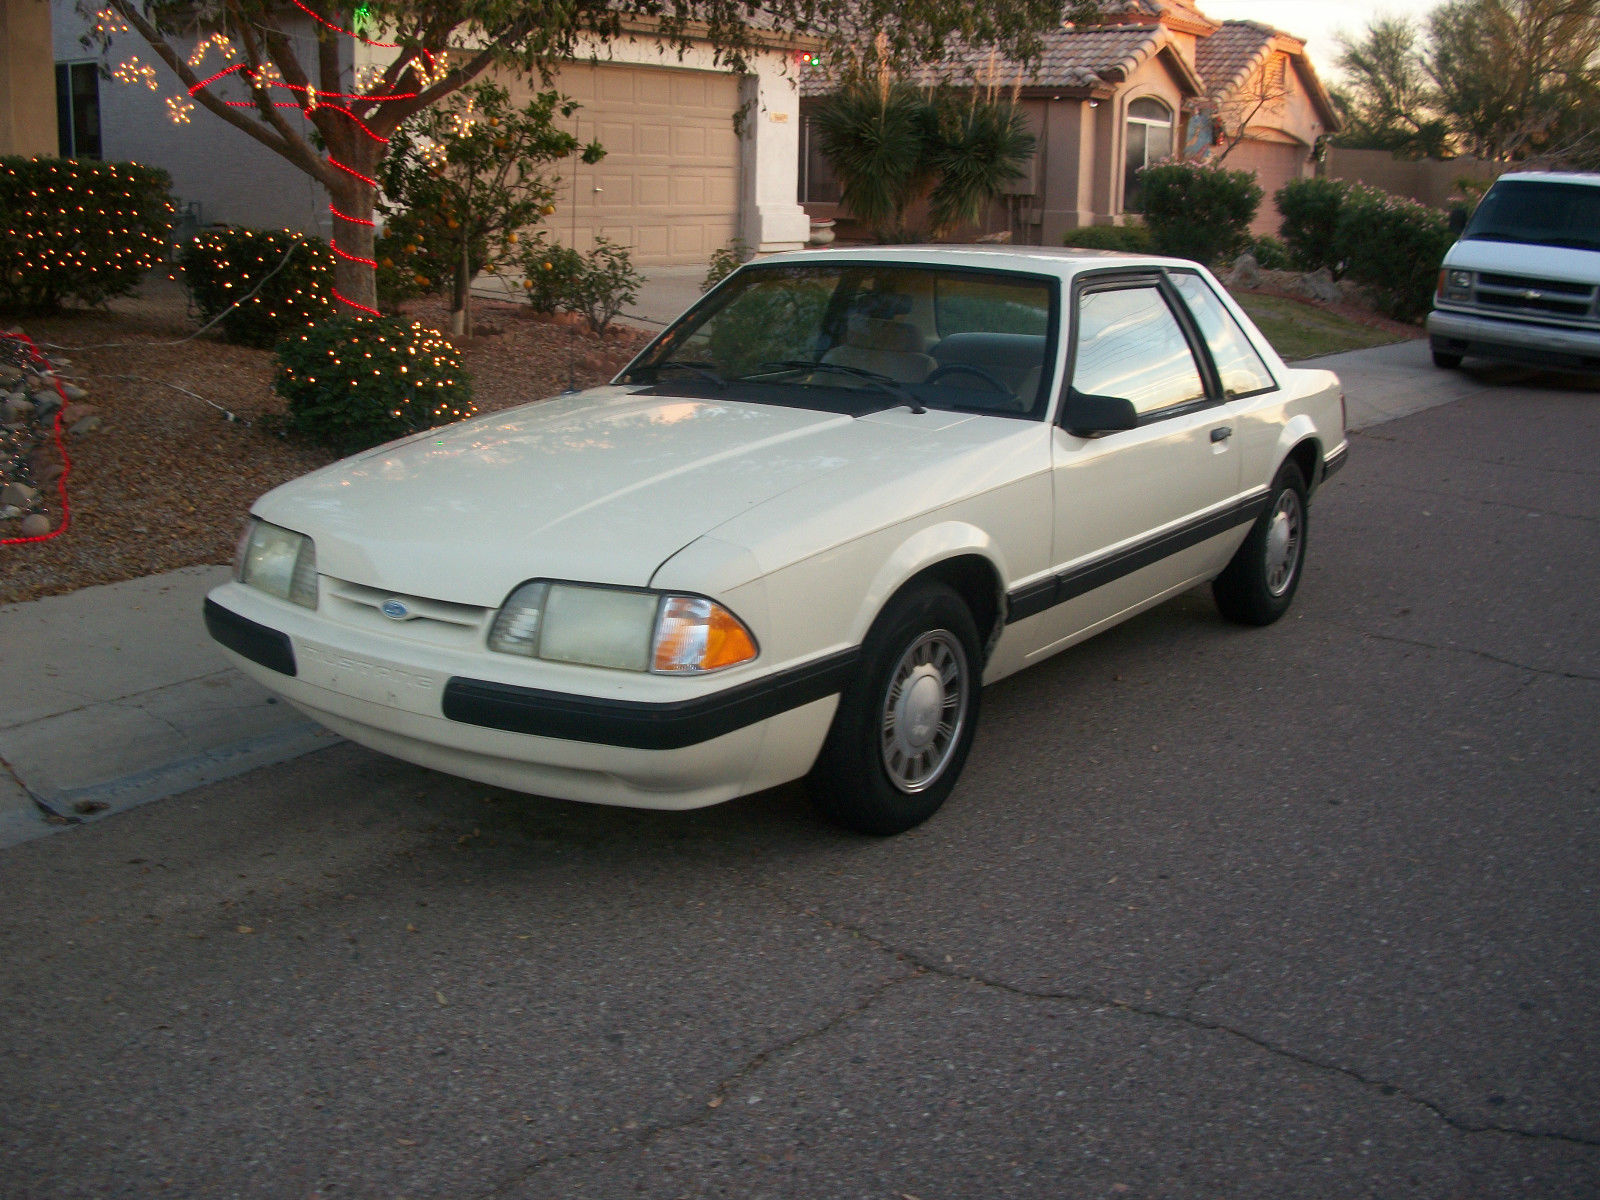 1989 ford mustang lx sedan 2 door 2 3l coupe notchback foxbody